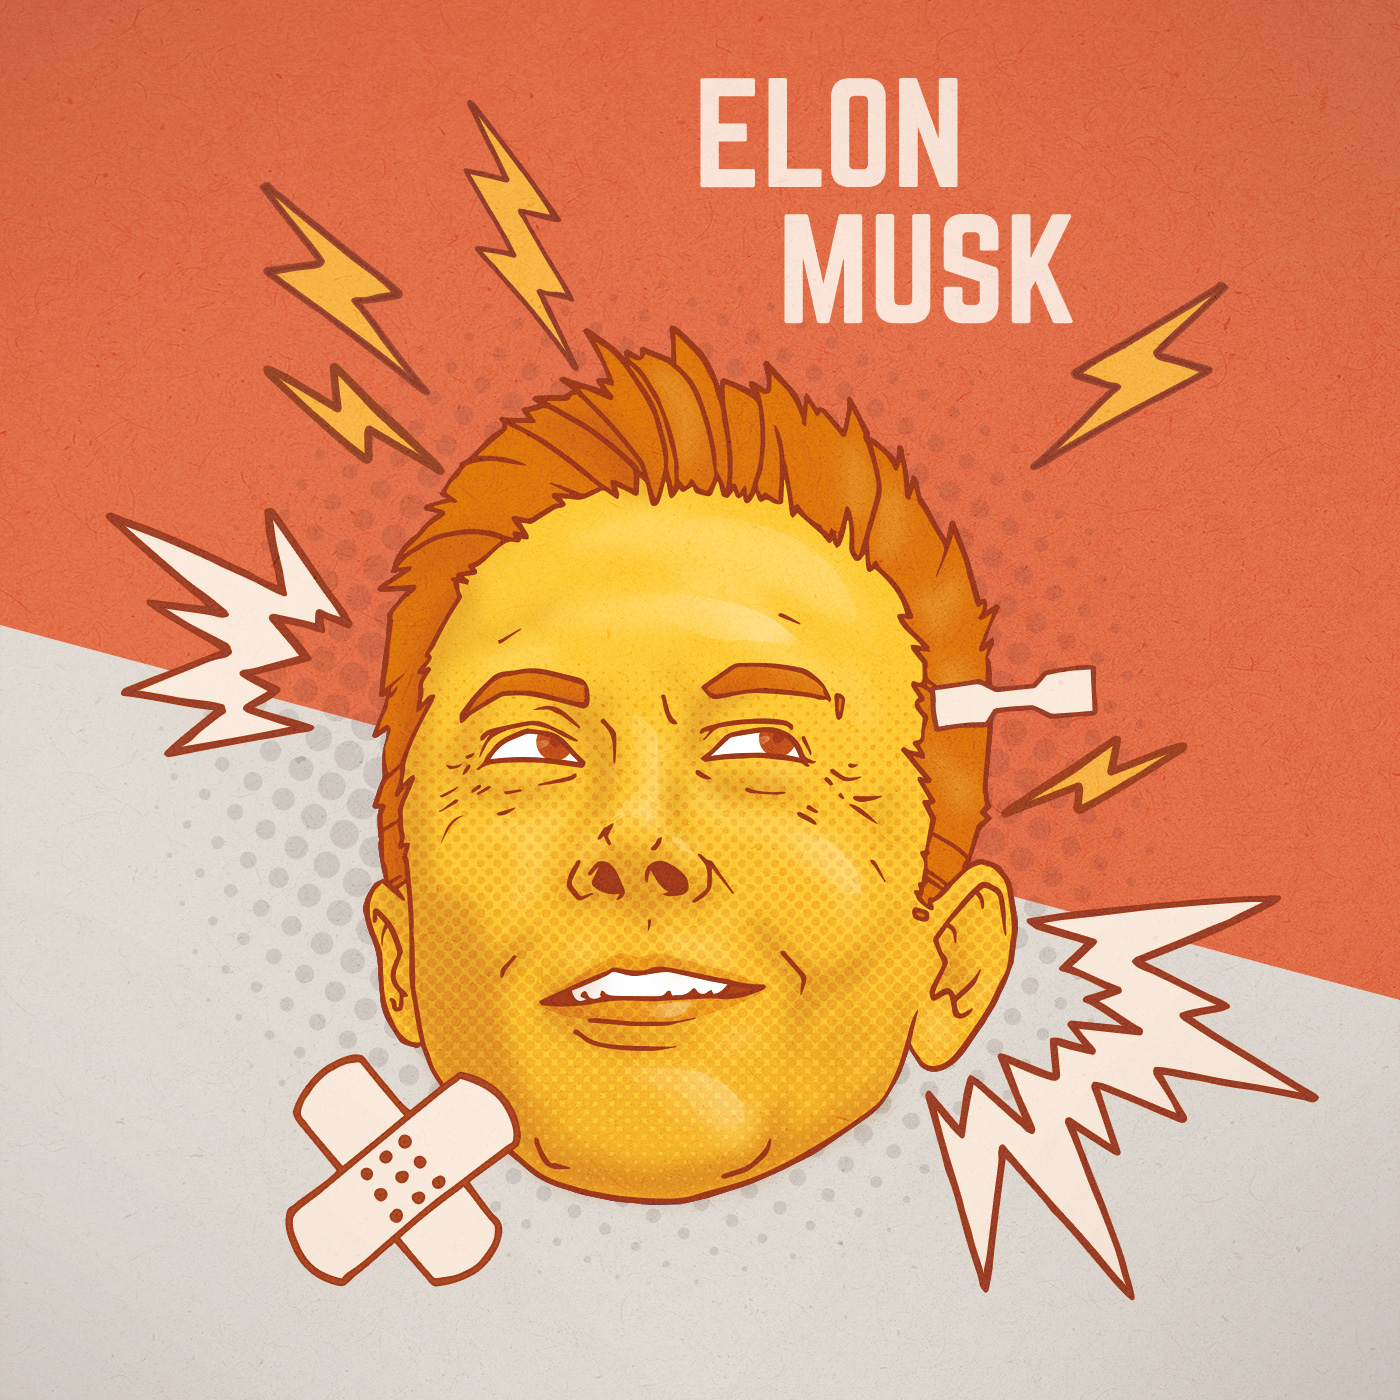 Elon Musk Illustration